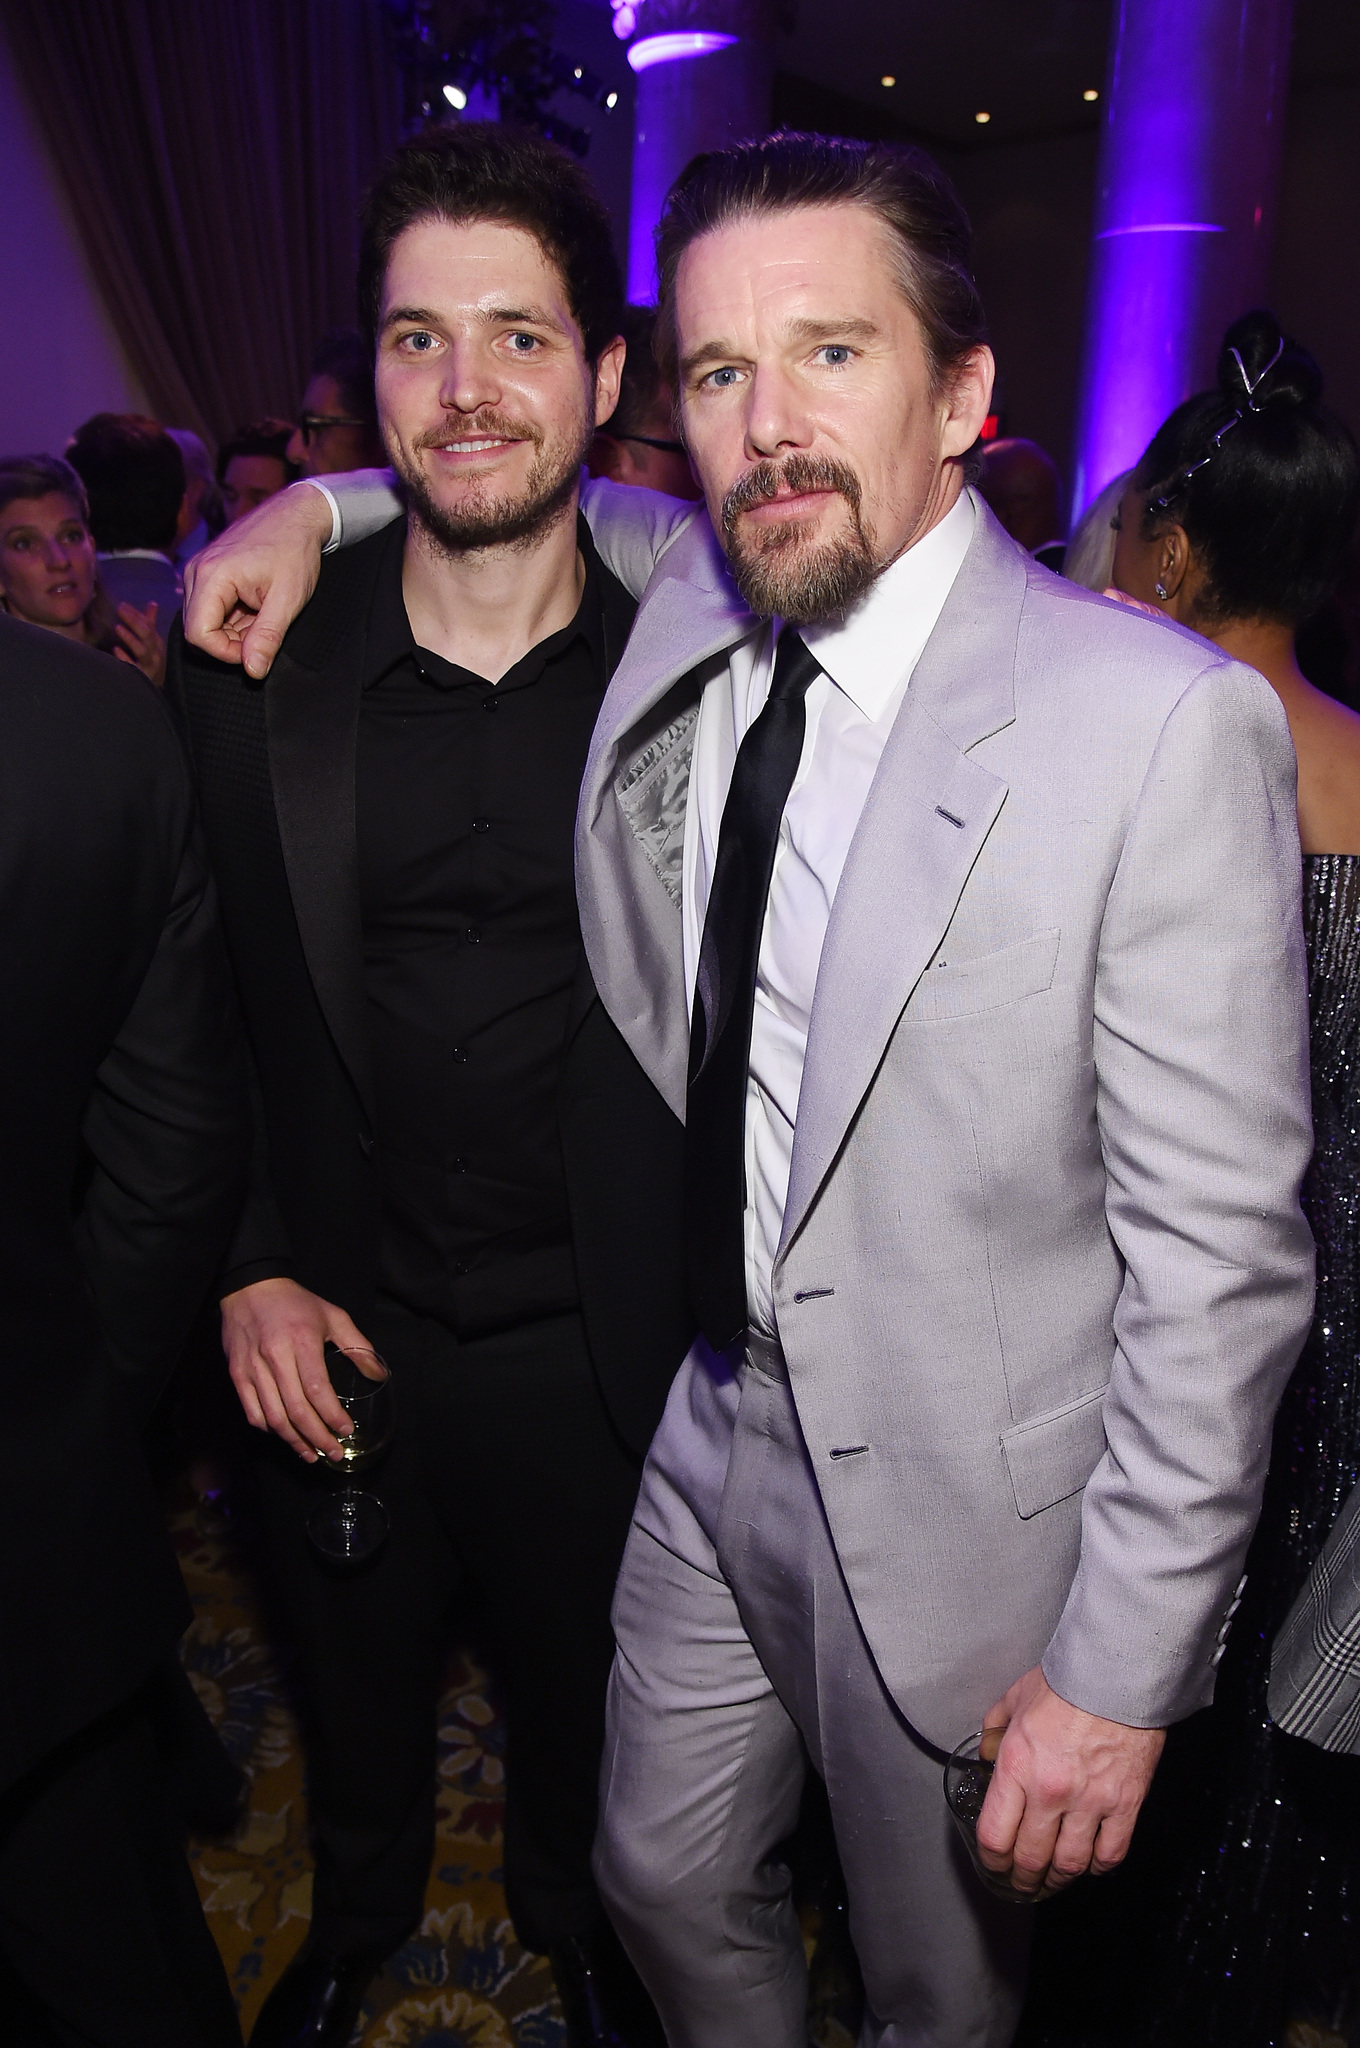 Ethan Hawke and Philip Ettinger